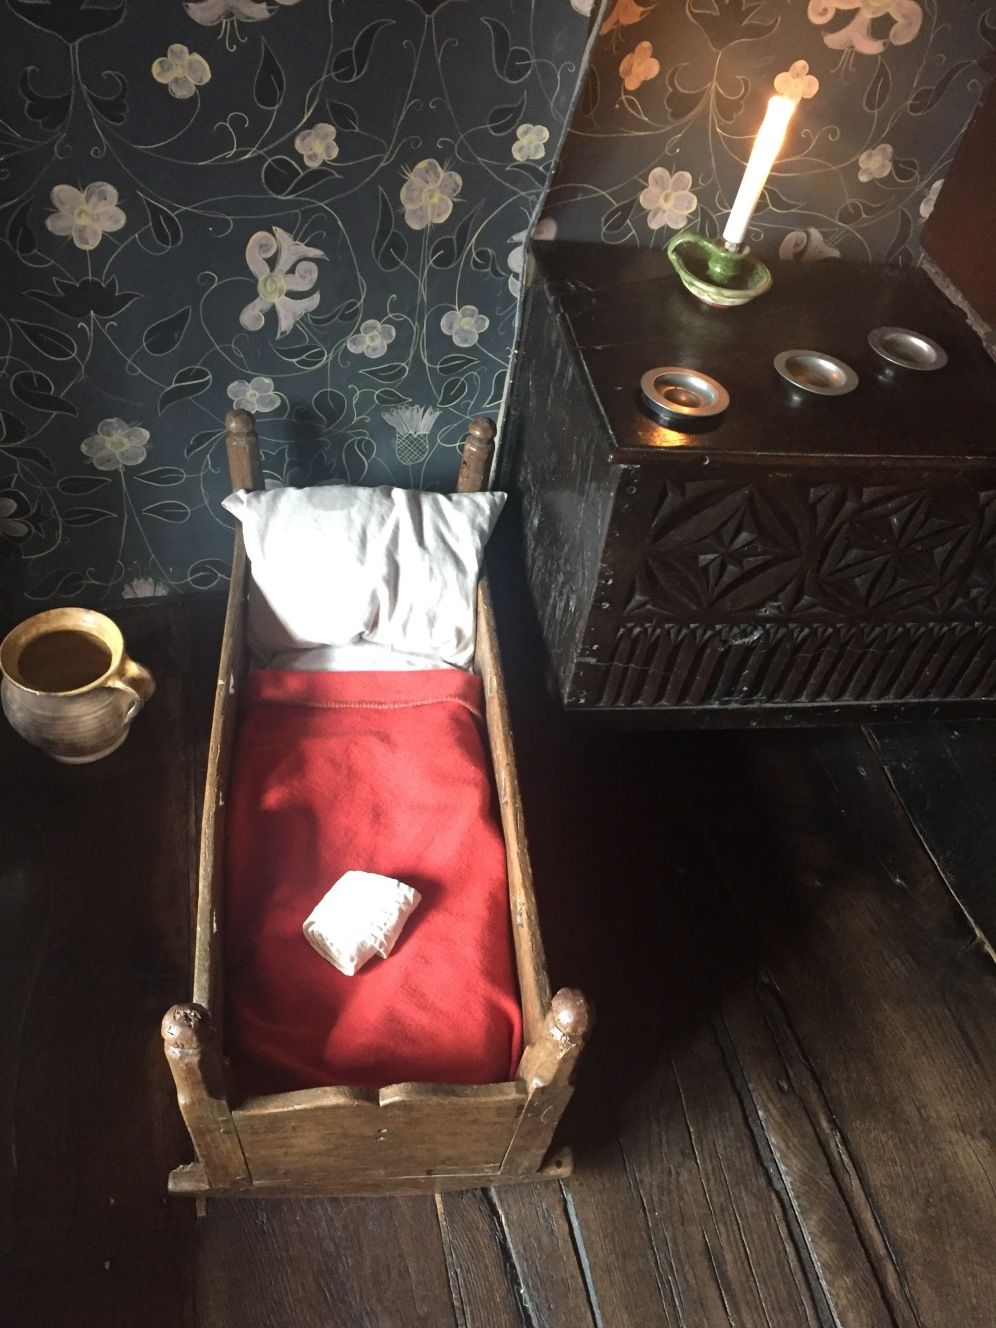 William Shakespeare's Cot